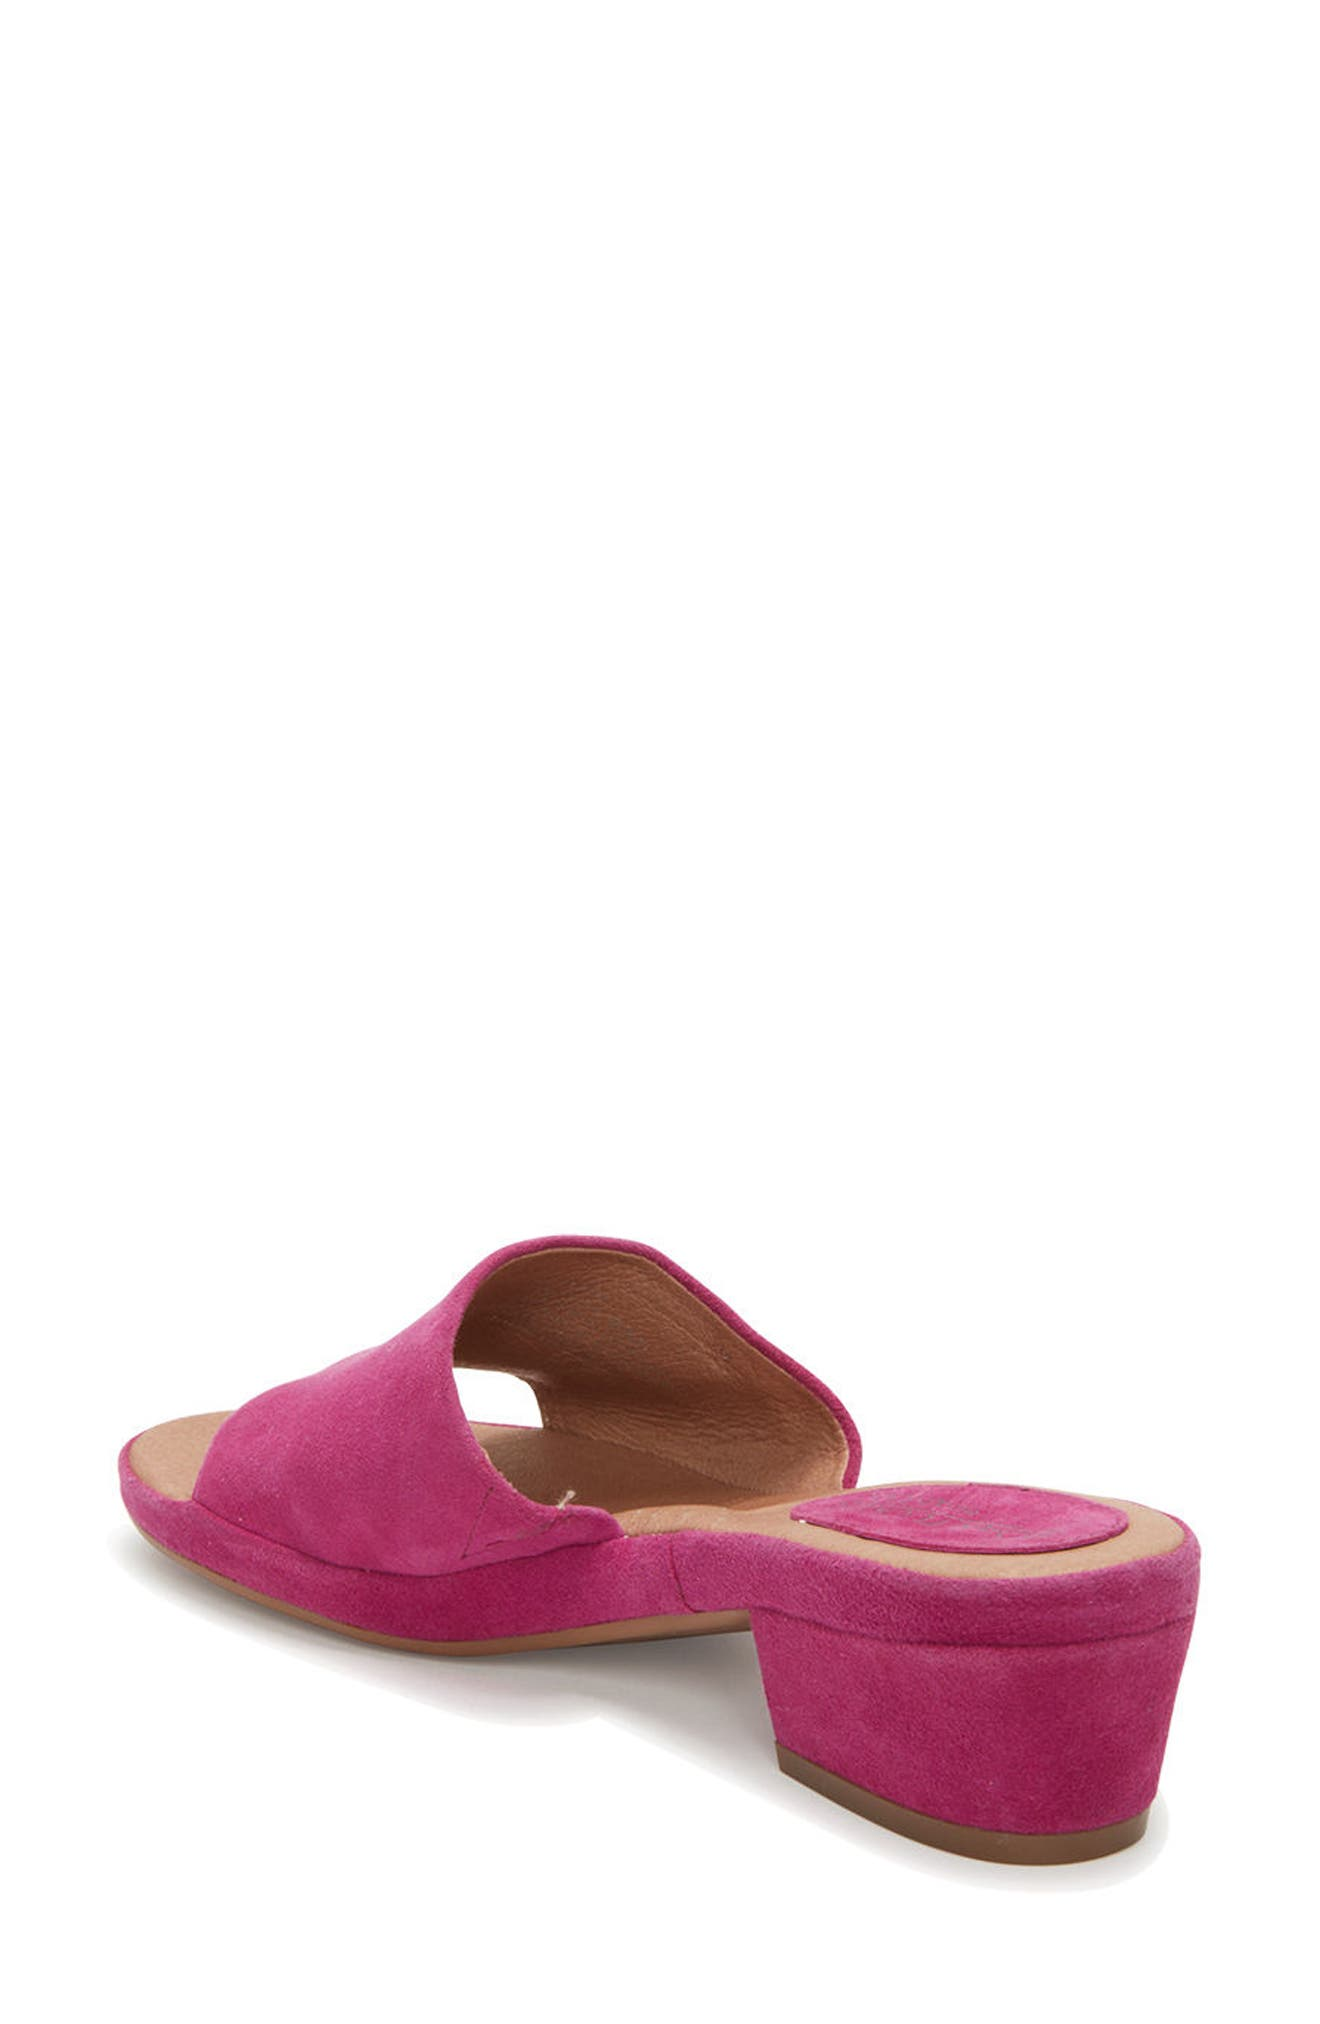 Adam Tucker Yolo Sandal,                             Alternate thumbnail 2, color,                             Fuchsia Suede